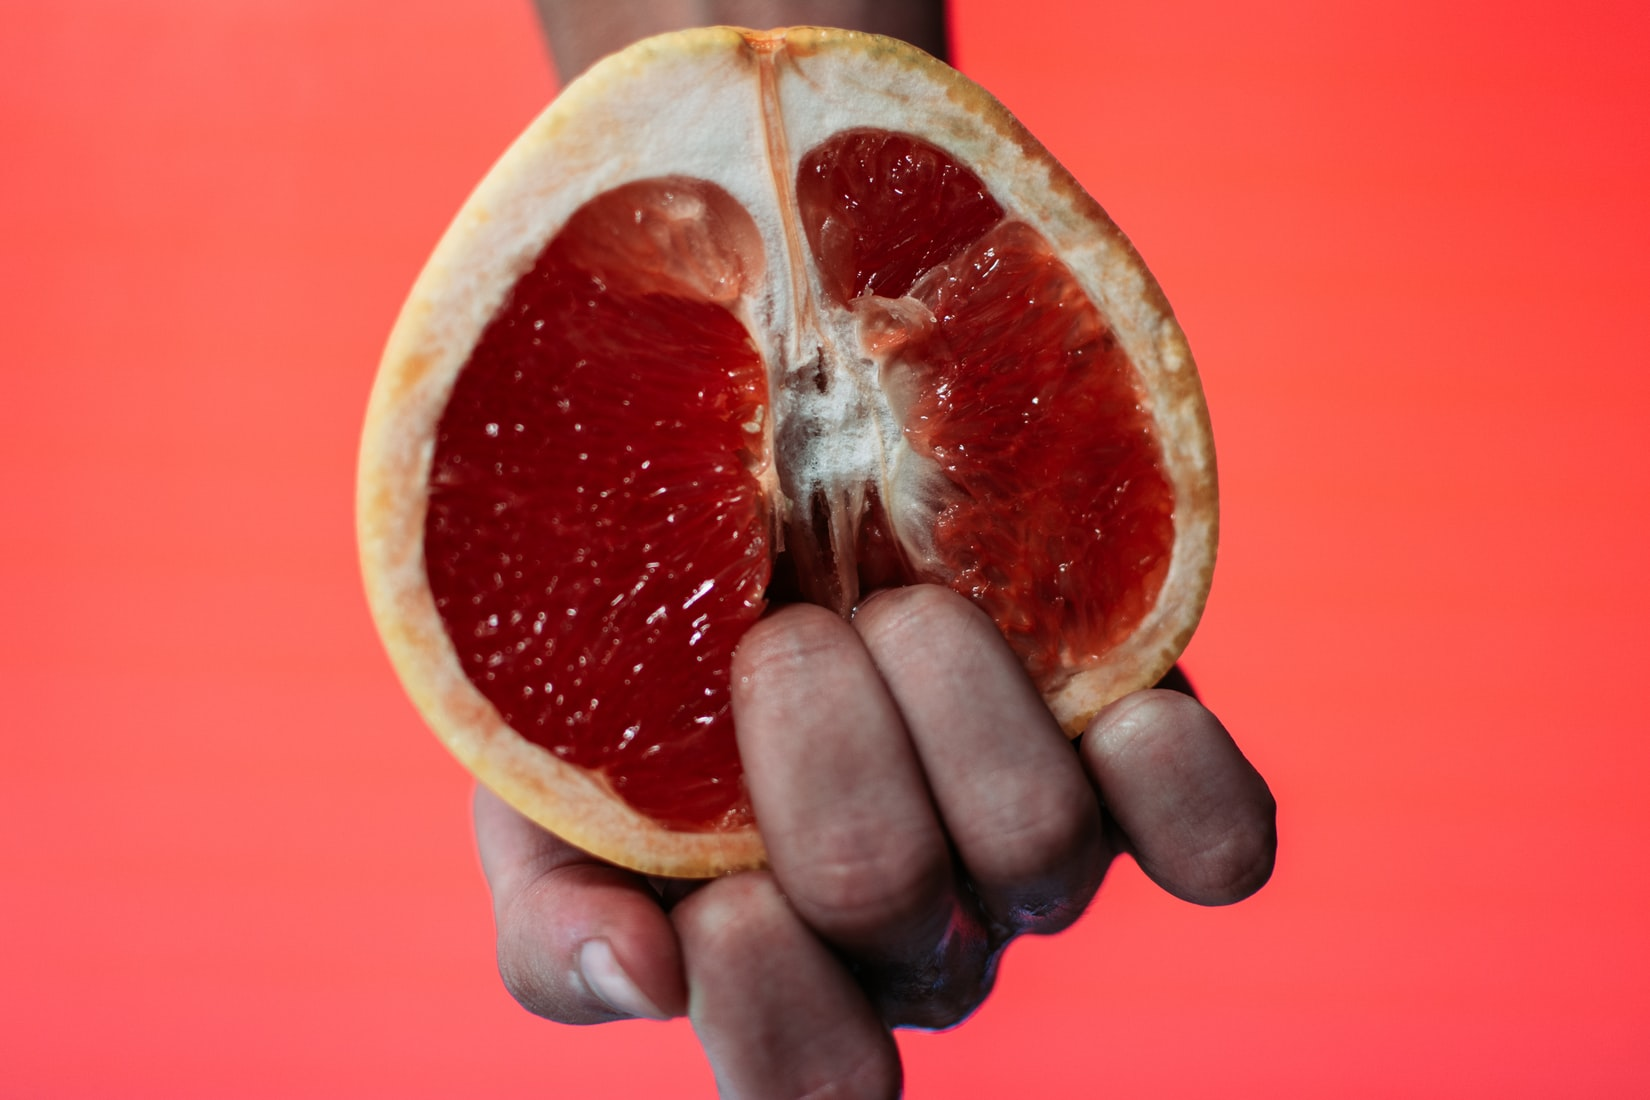 Man's fingers in a sliced red fruit